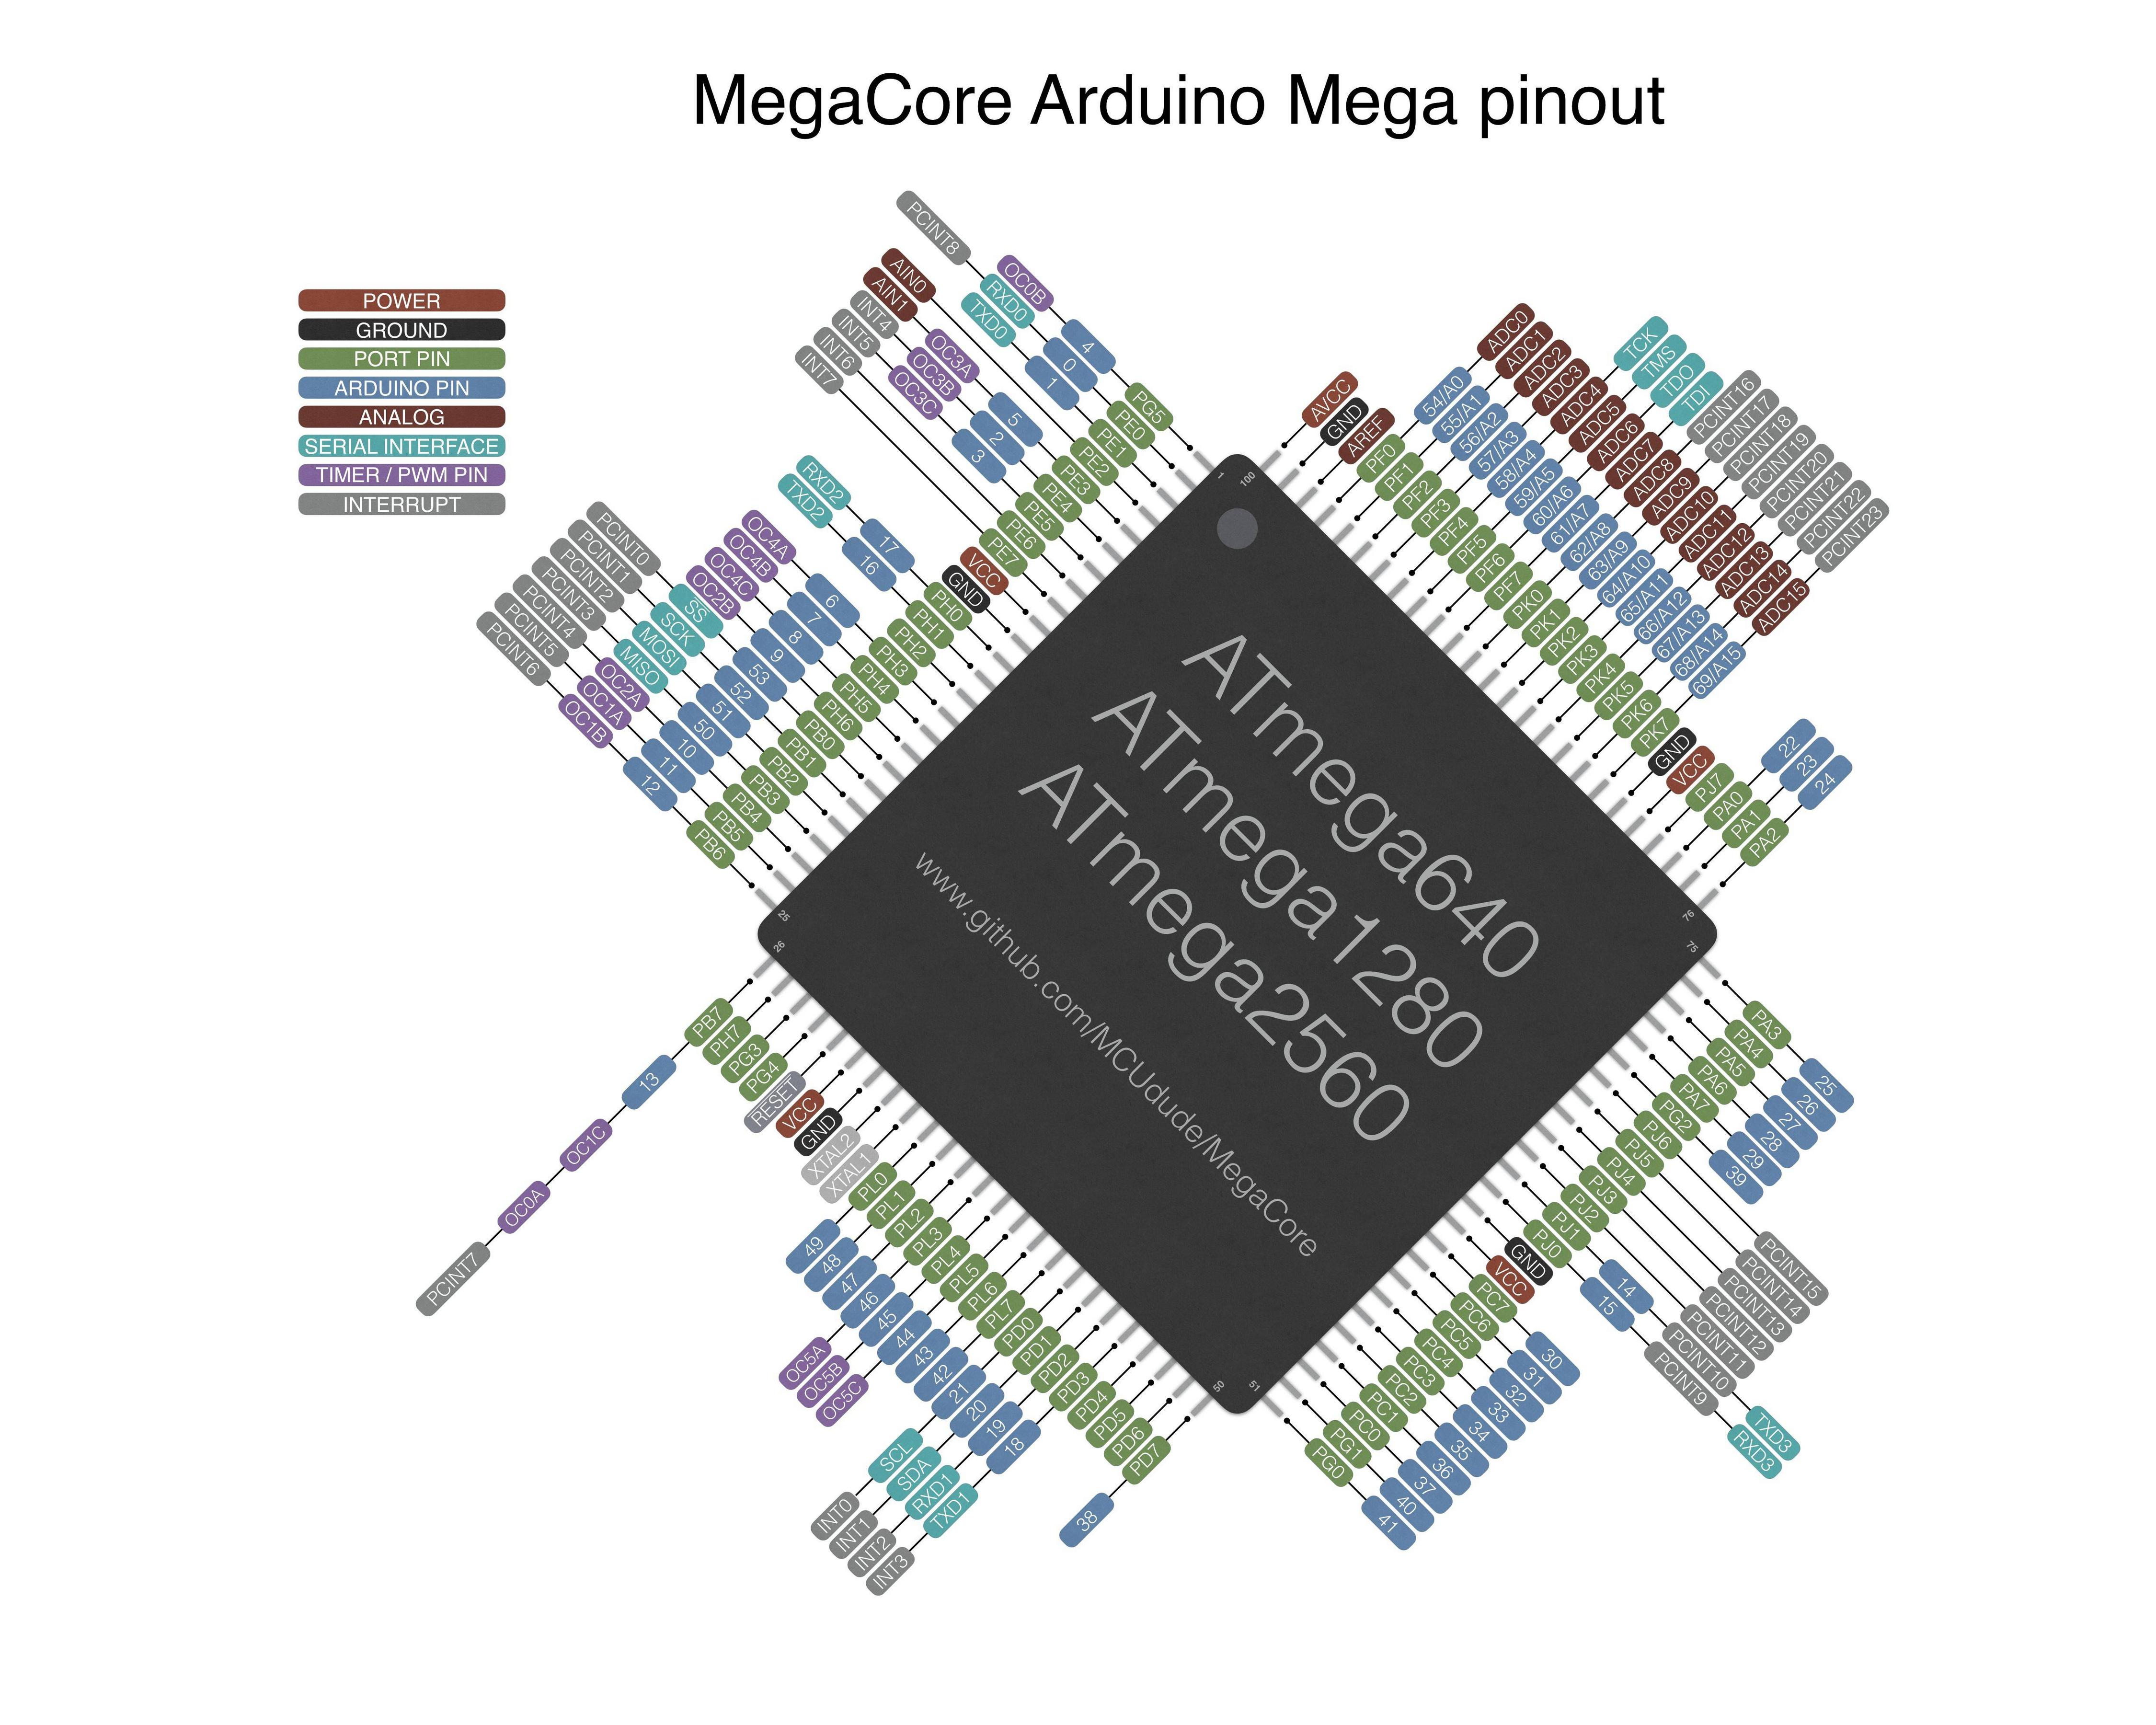 687474703a2f2f692e696d6775722e636f6d2f6b303057474c6b2e6a7067 github mcudude megacore an arduino hardware package for arduino mega wiring diagram at alyssarenee.co